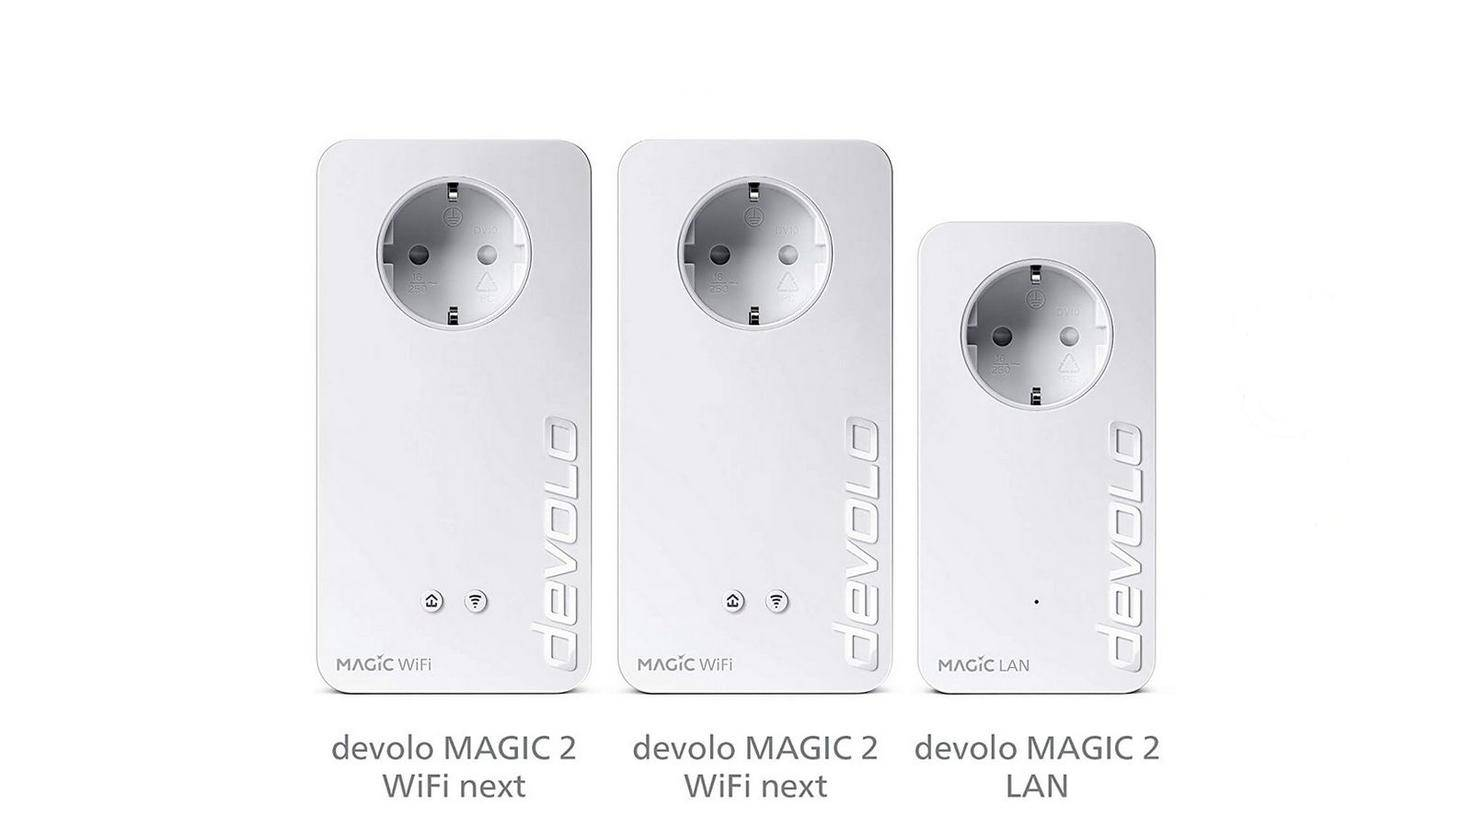 Devolo-Magic-2-Produktumfang